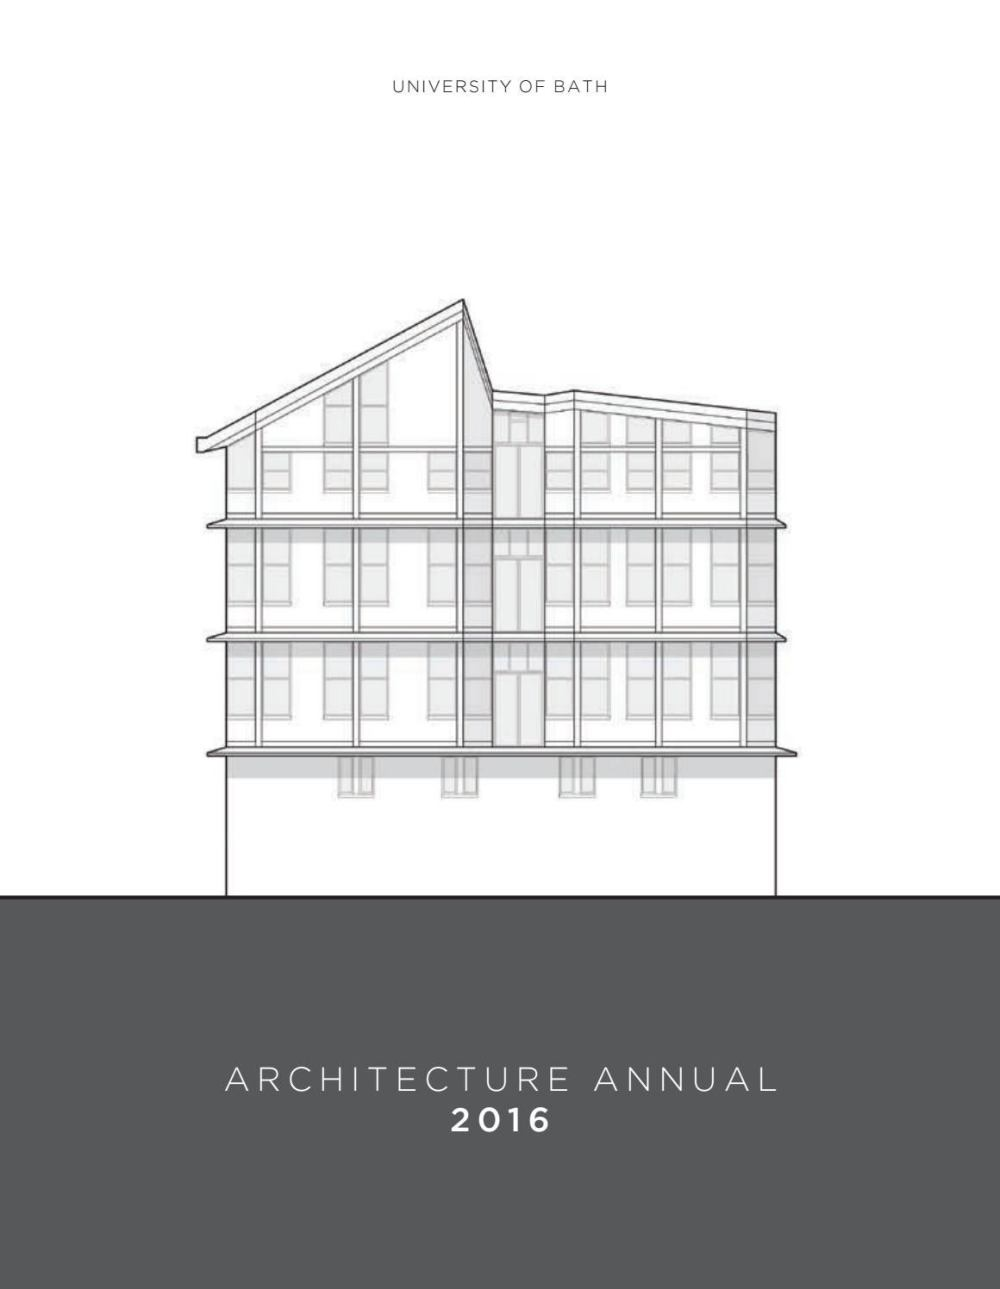 medium resolution of university of bath architecture annual 2016 by faculty of engineering design issuu